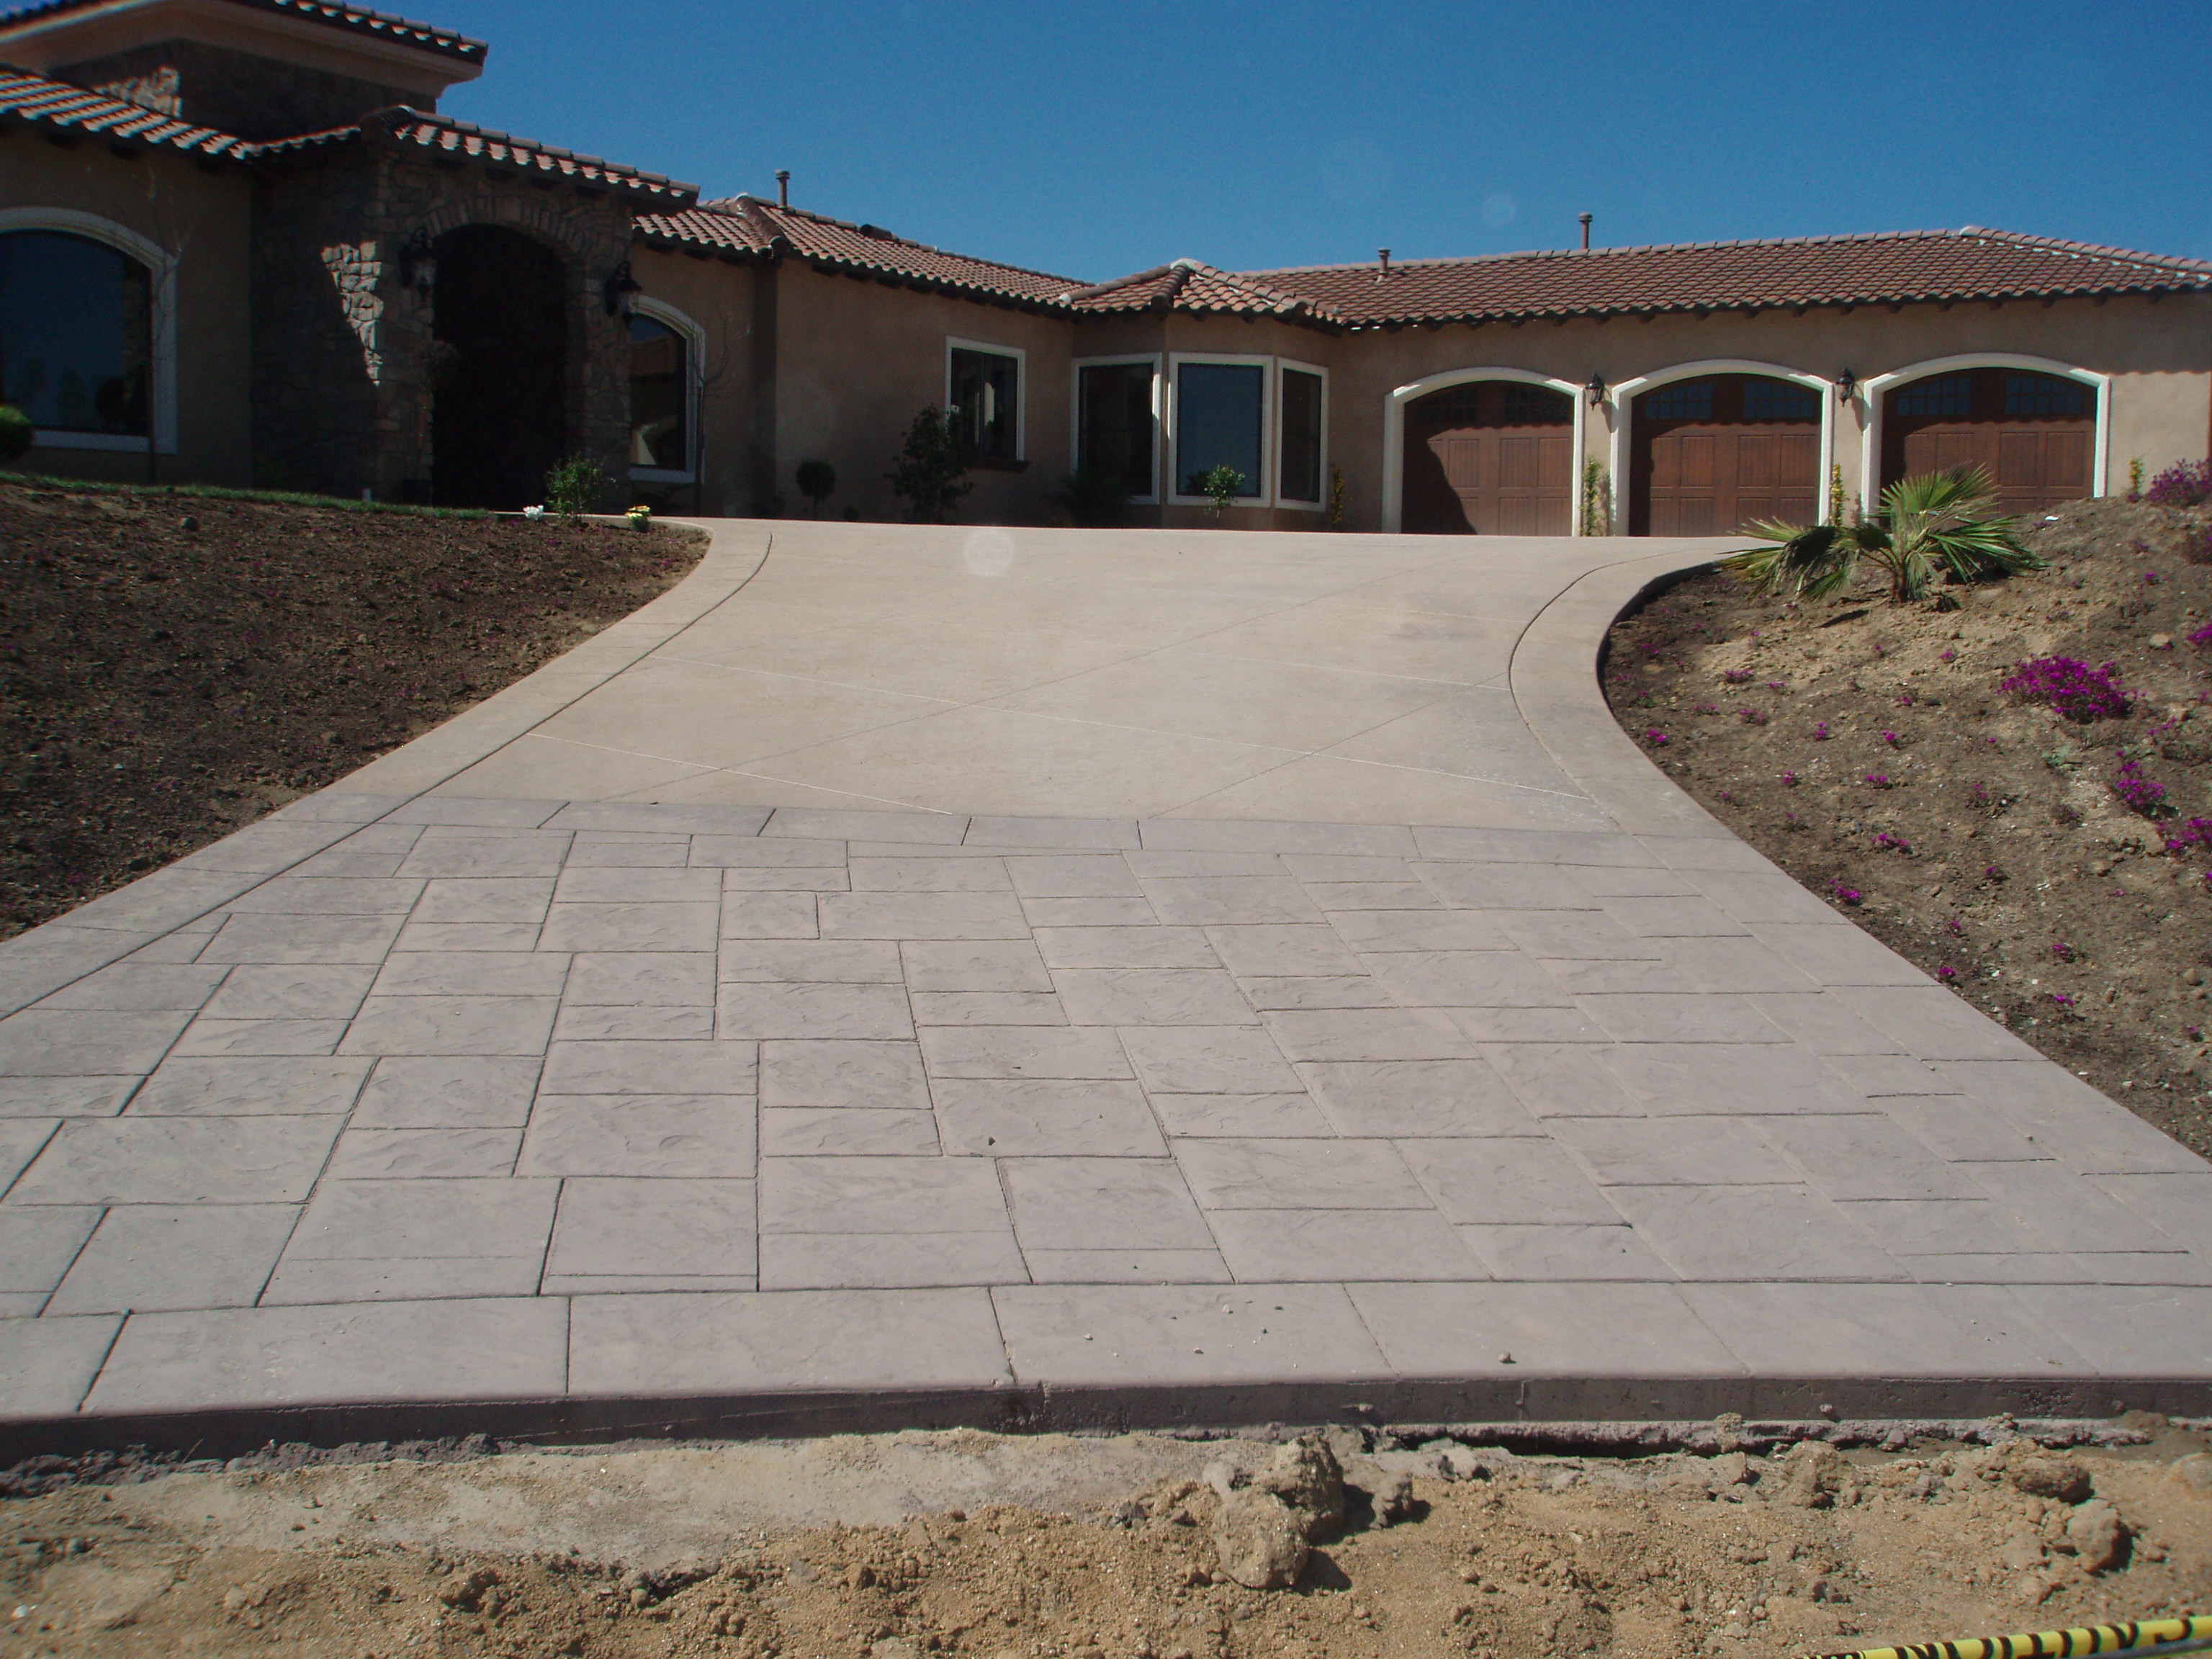 Driveways, patios, walkways, sidewalks and stoops